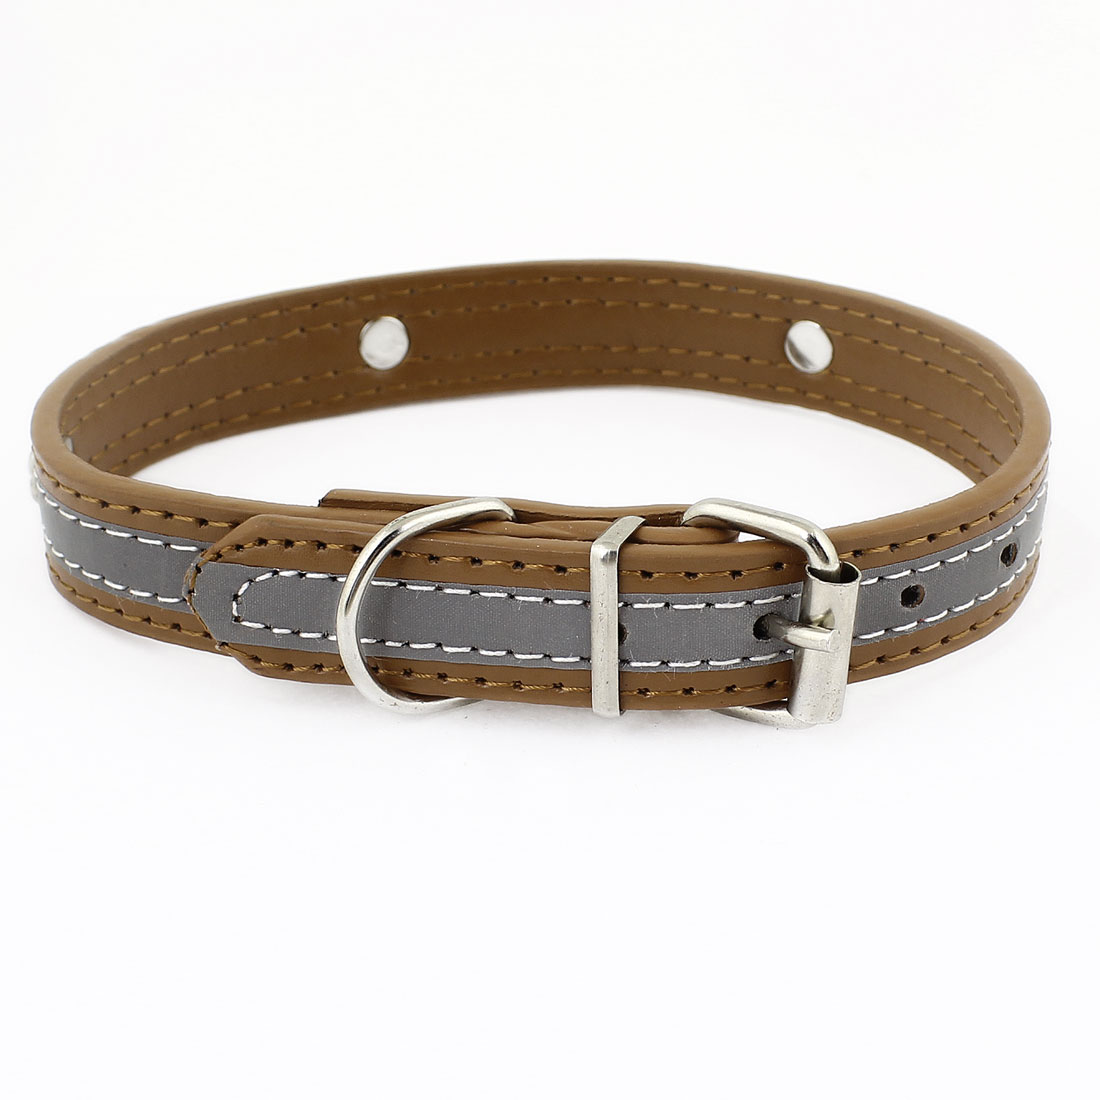 Brown Faux Leather Bone Printed Adjustable Pet Cat Dog Doggy Puppy Collar Rope